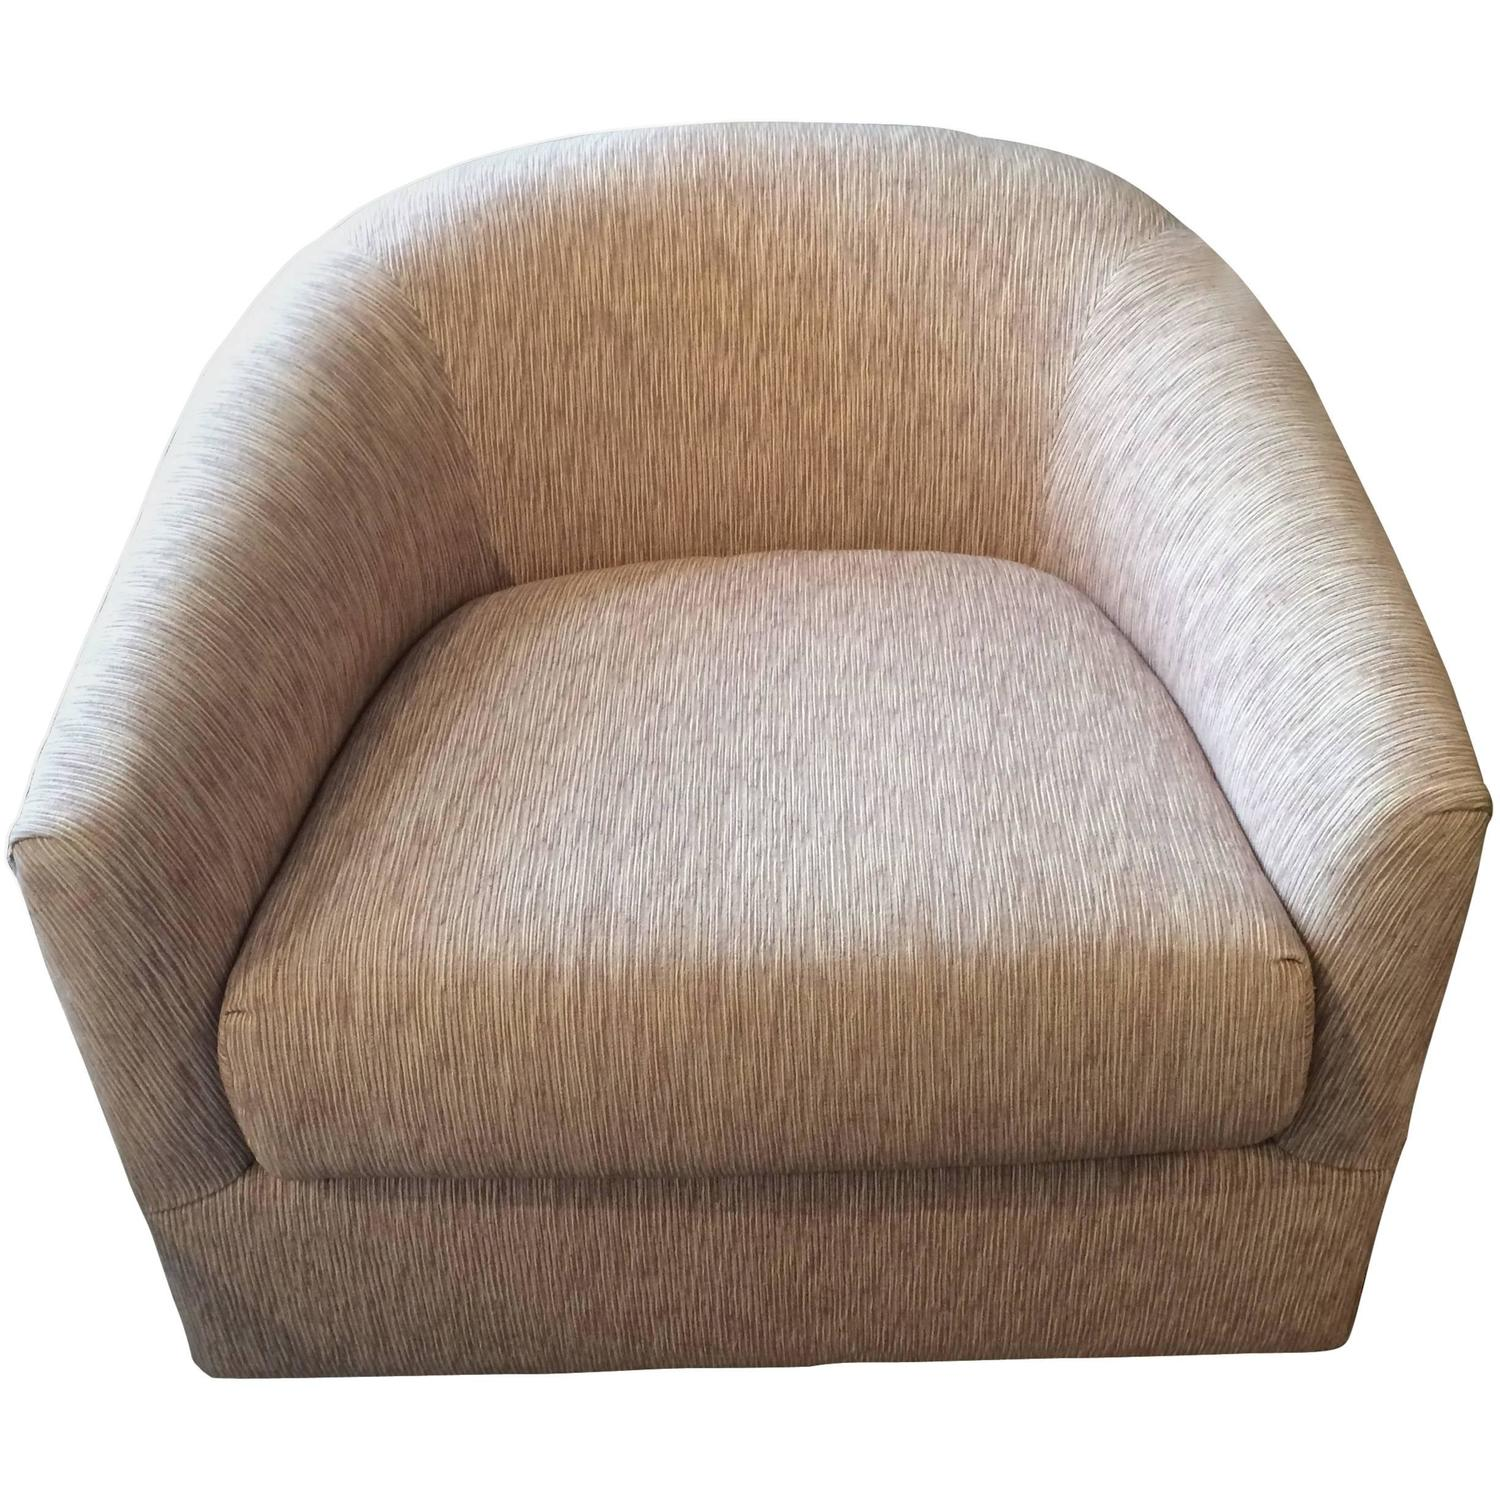 Rounded Mid Century Modern Swivel Club Chair At 1stdibs